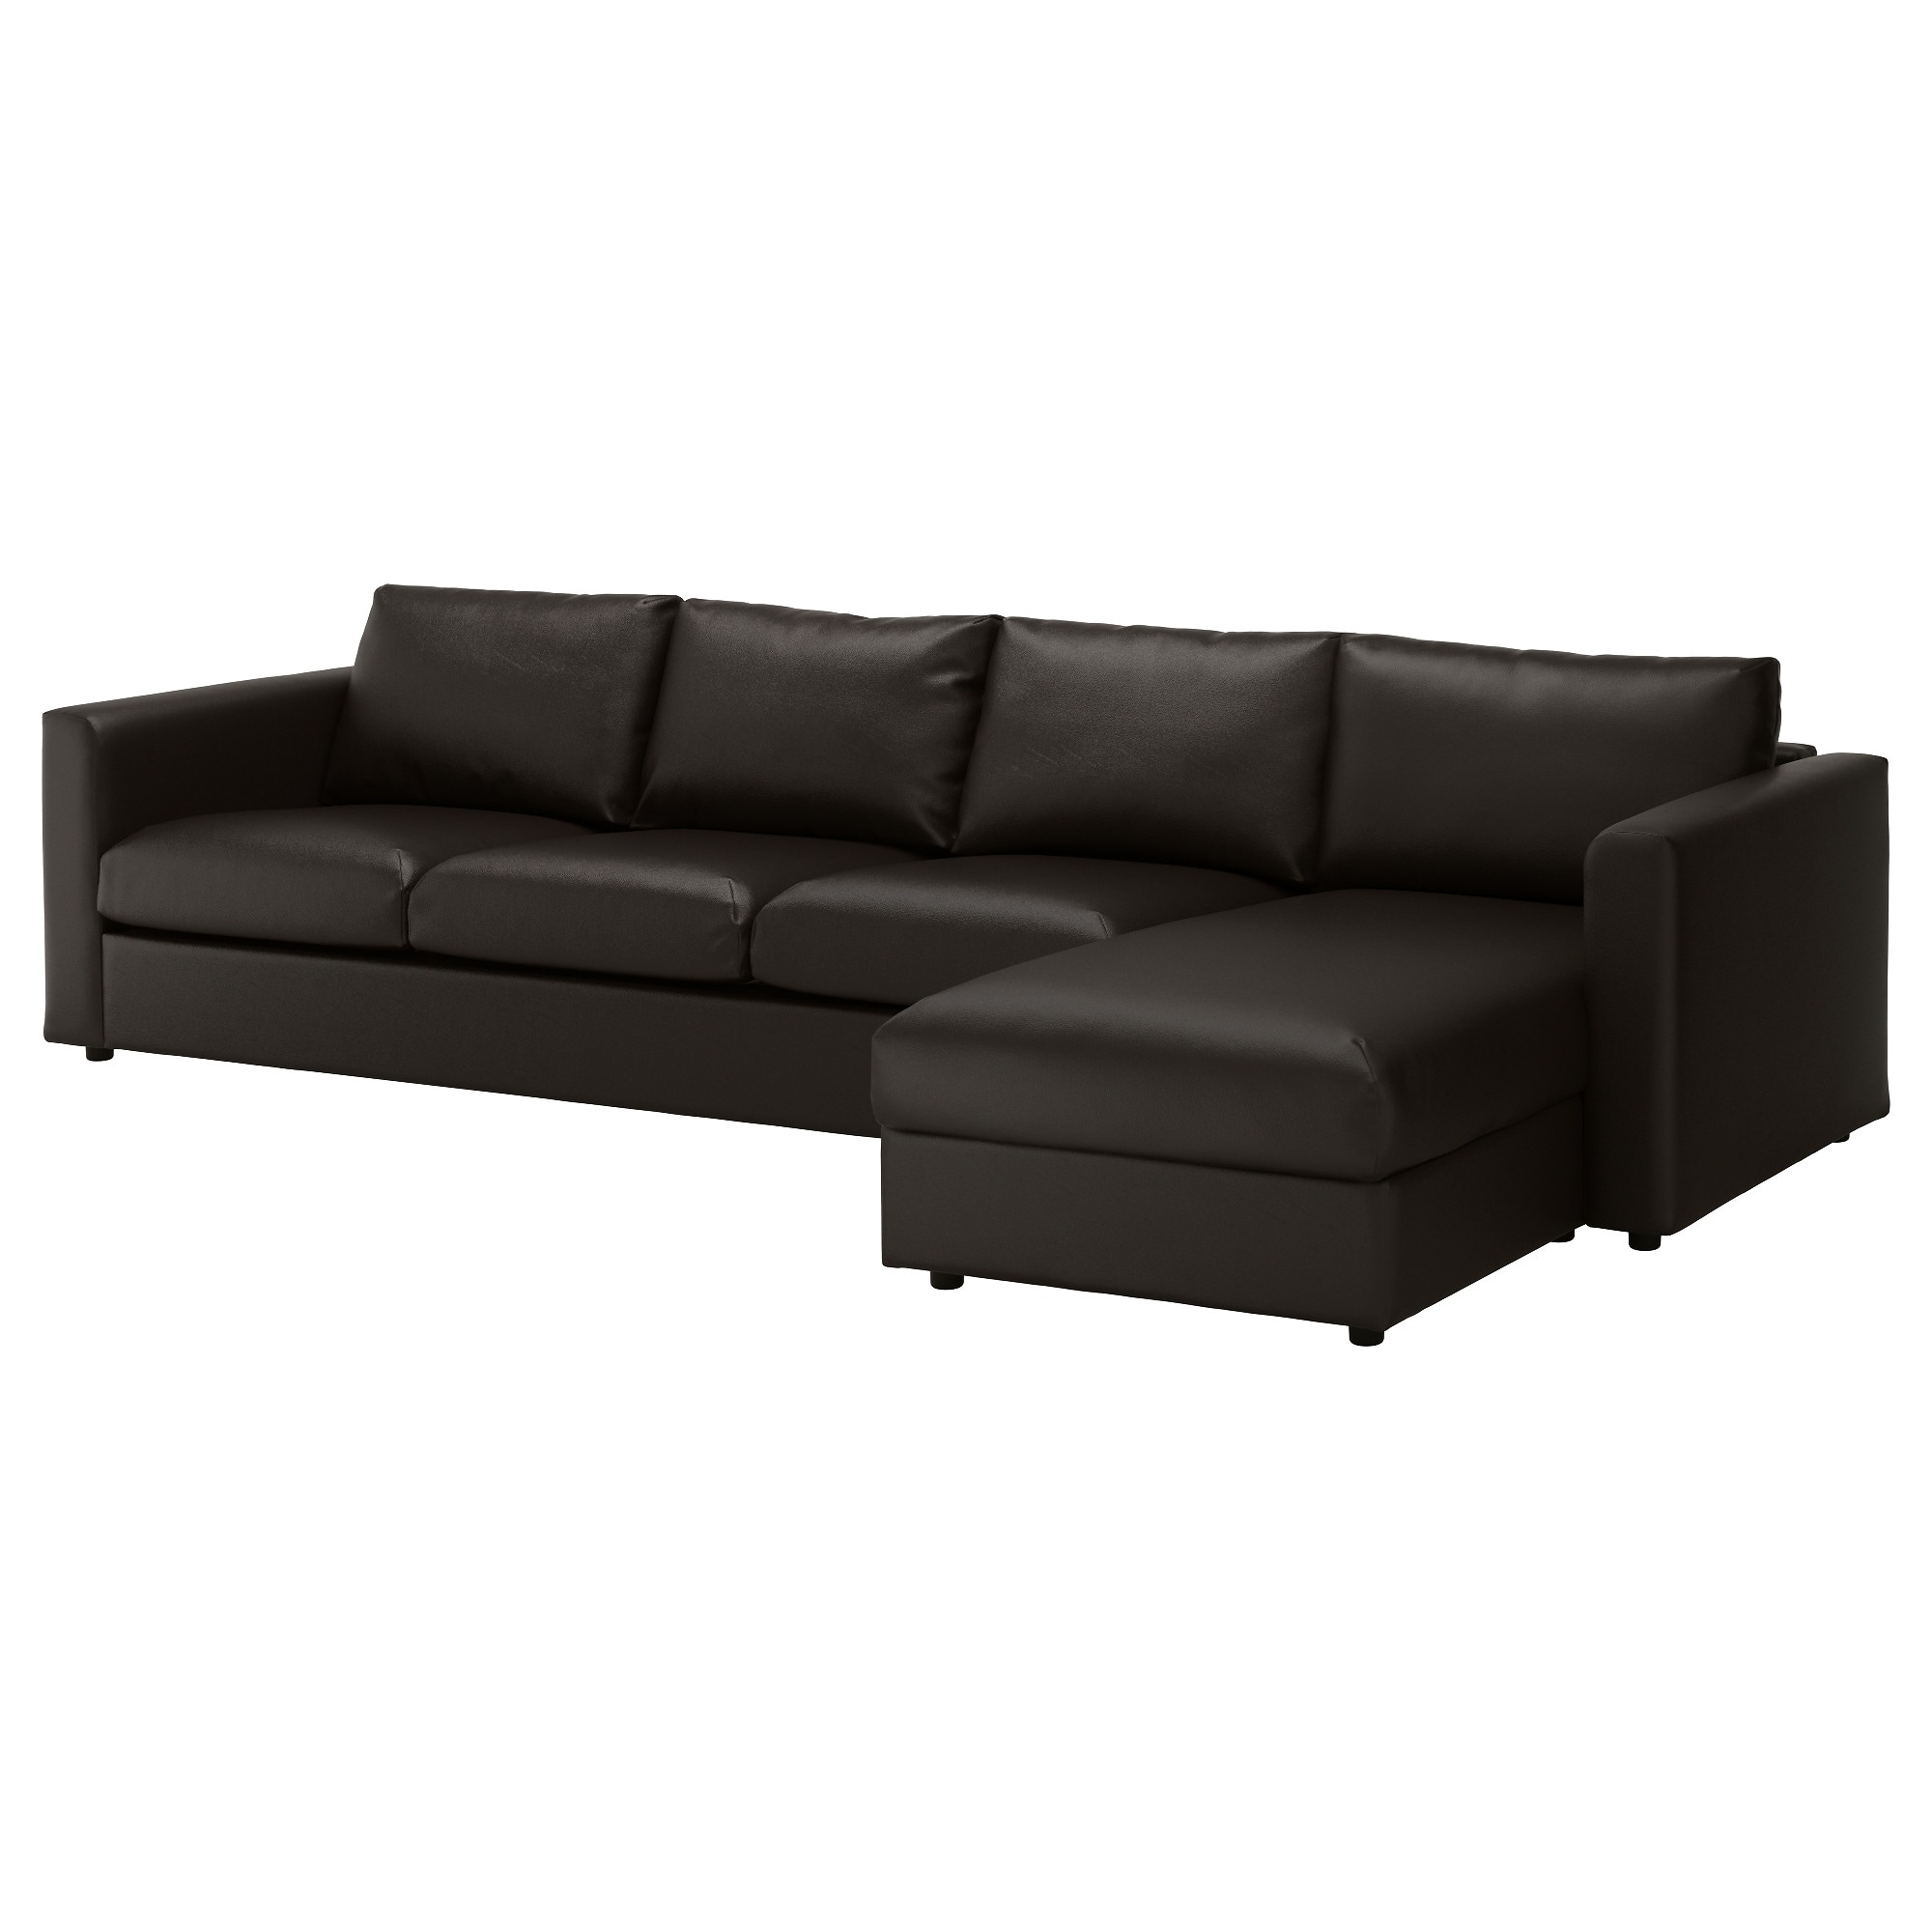 Vimle Sectional, 4 Seat – With Chaise/tallmyra Black/gray – Ikea With Regard To Norfolk Grey 6 Piece Sectionals (Image 25 of 25)